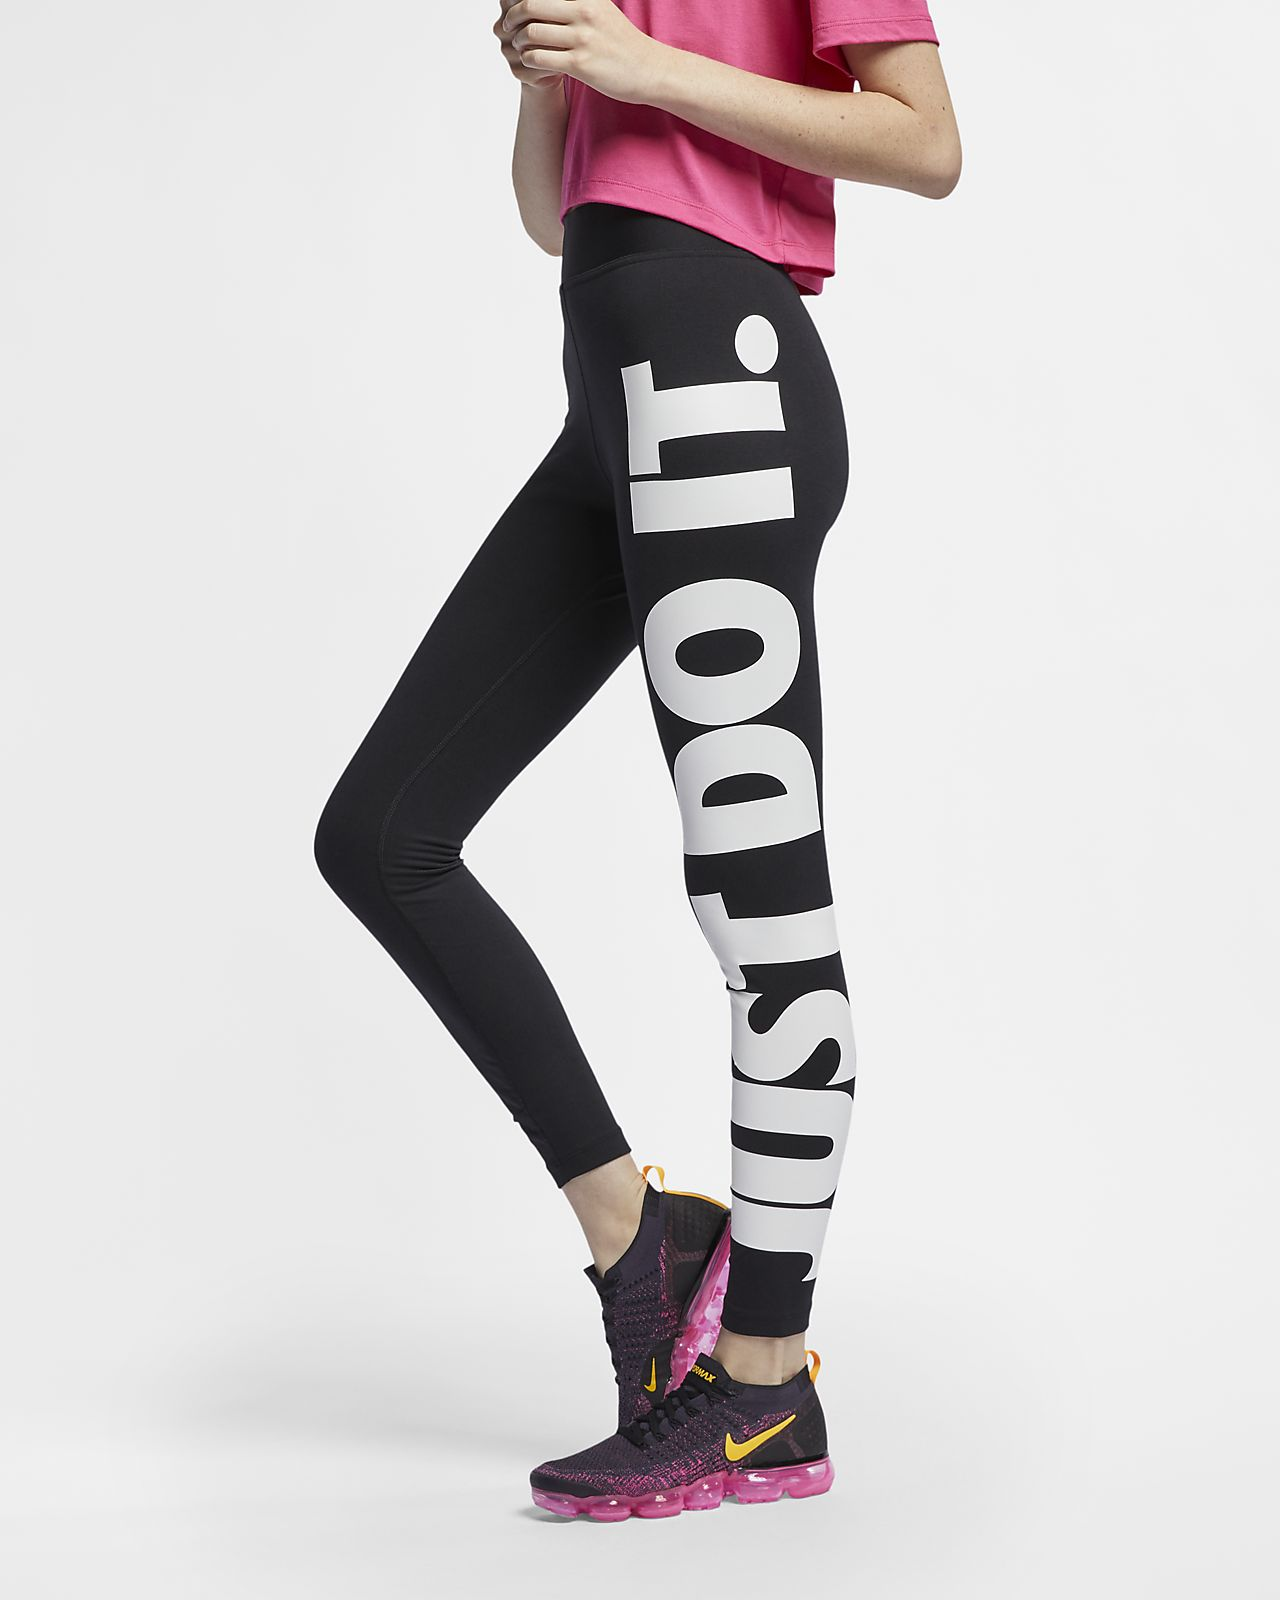 buy popular 9daed 14453 ... Nike Sportswear Leg-A-See JDI Women s High-Rise Leggings